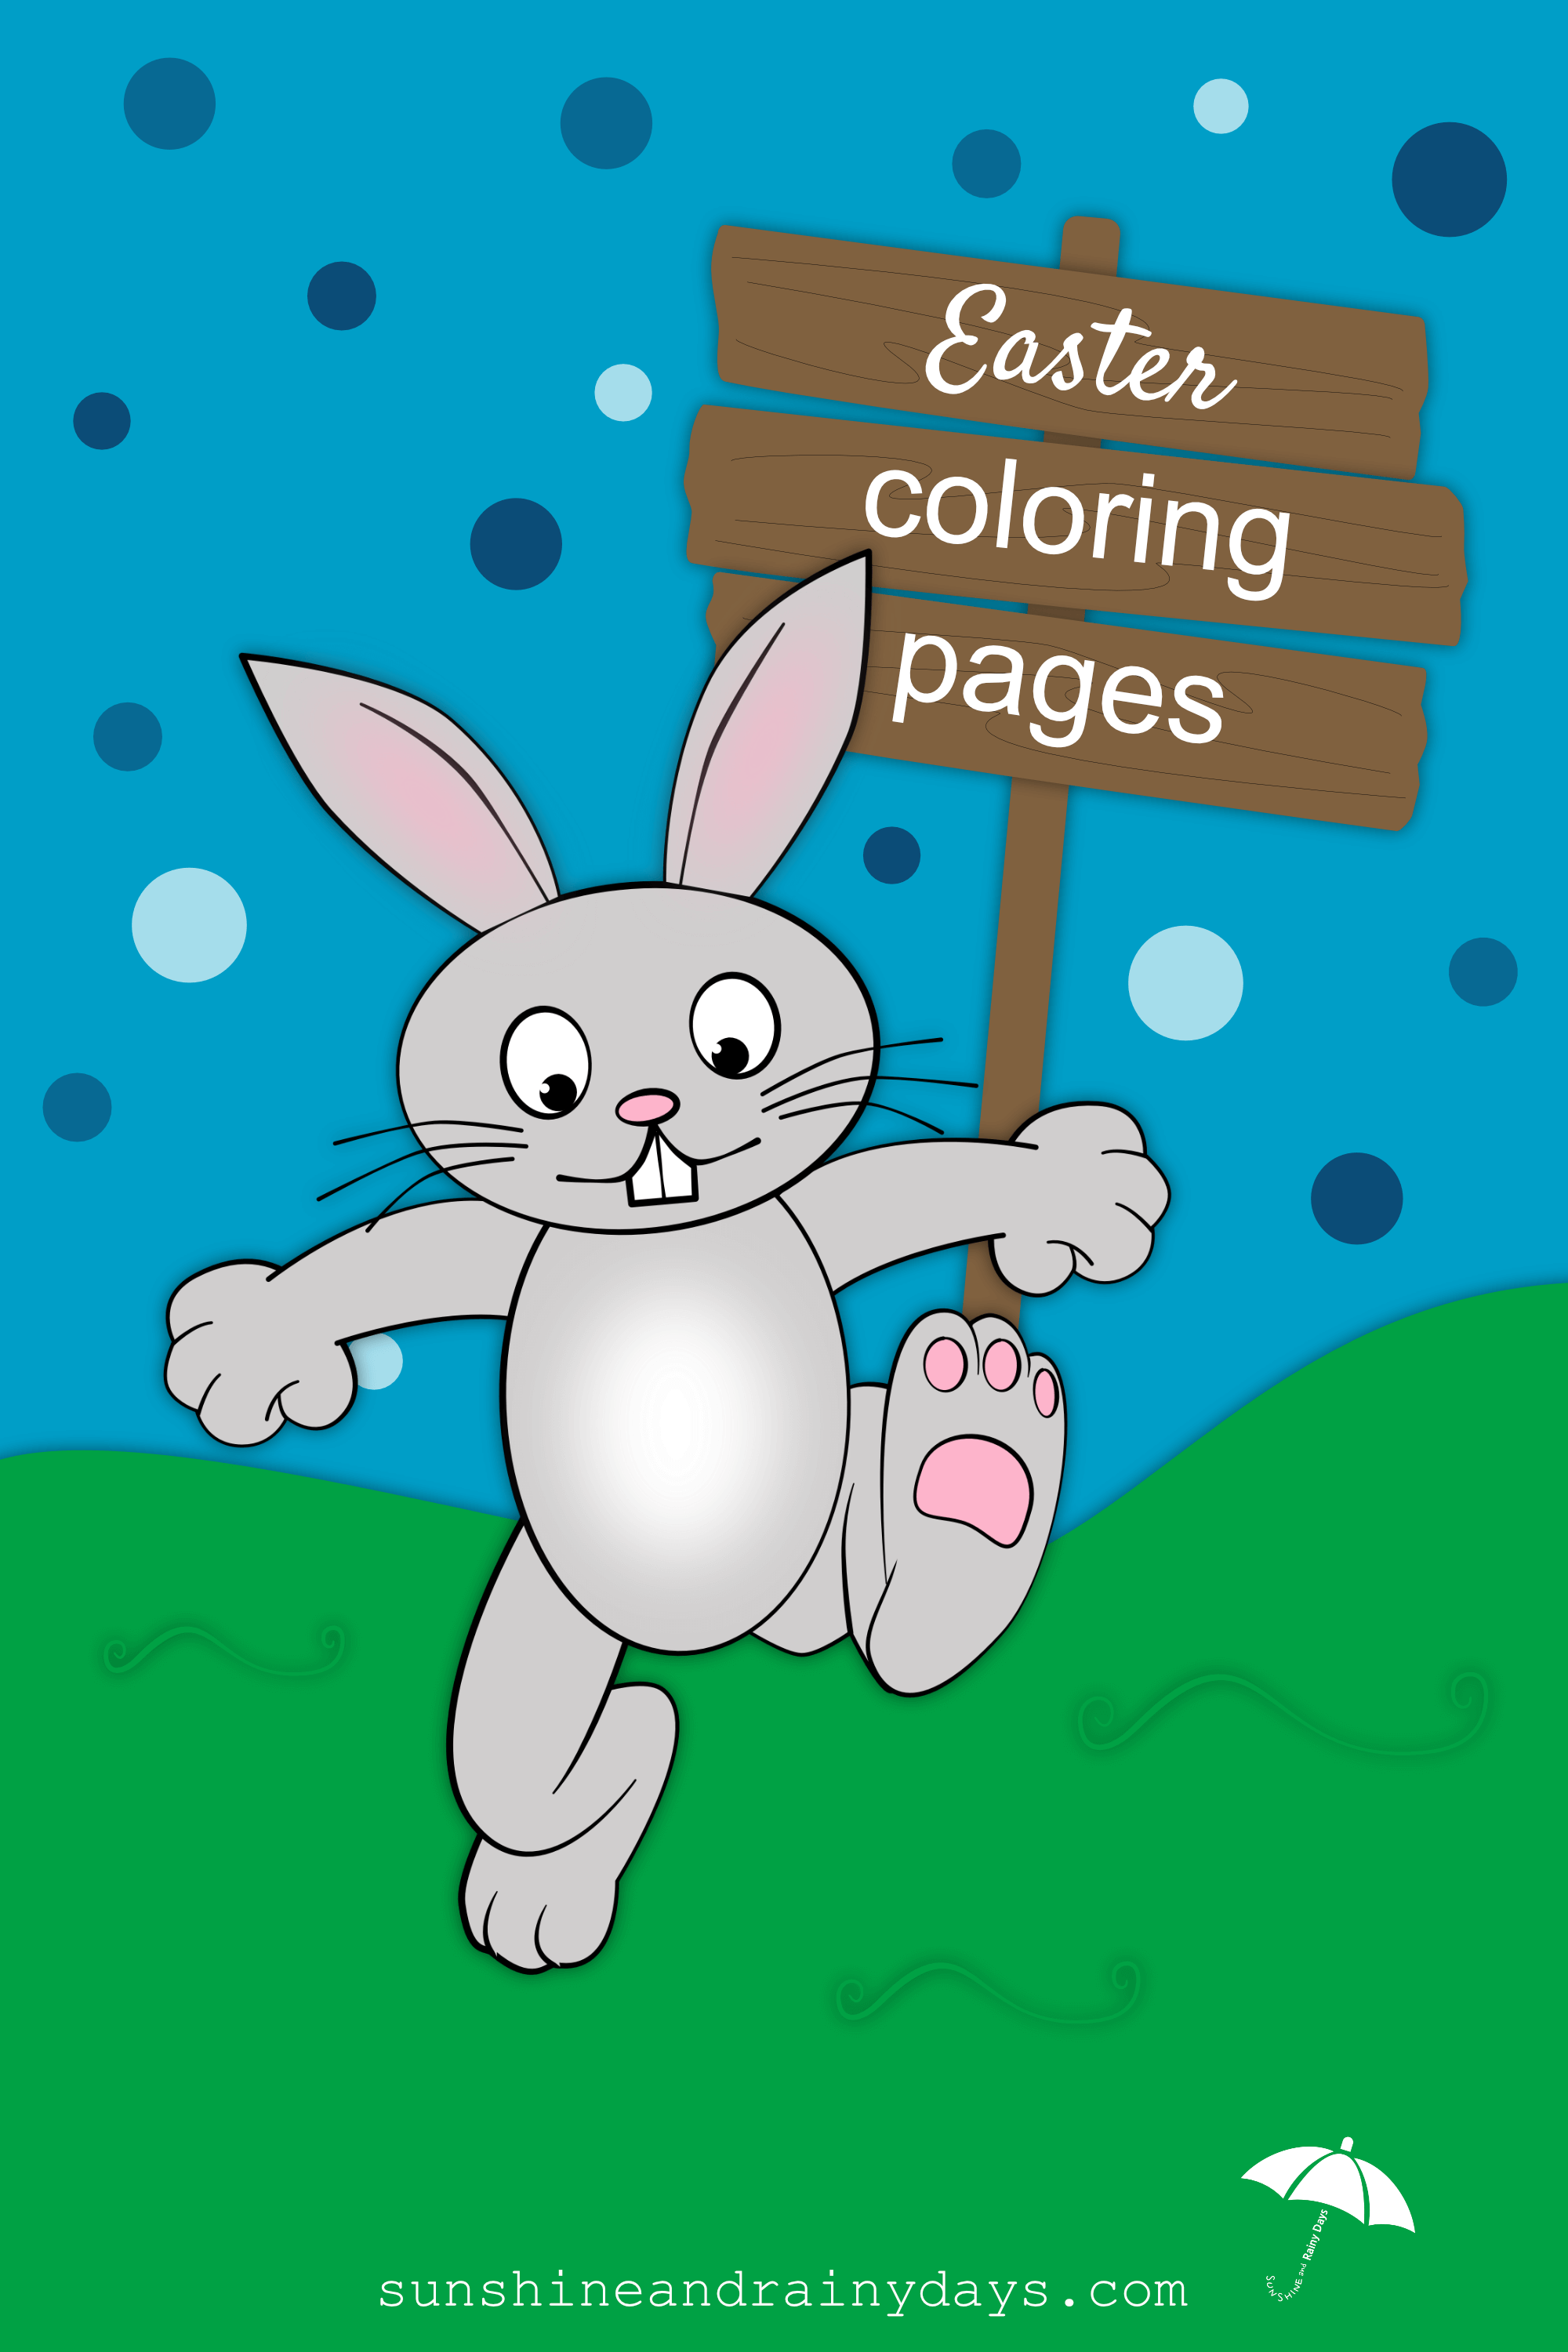 Easter Coloring Pages | Easter colouring, Easter and Craft